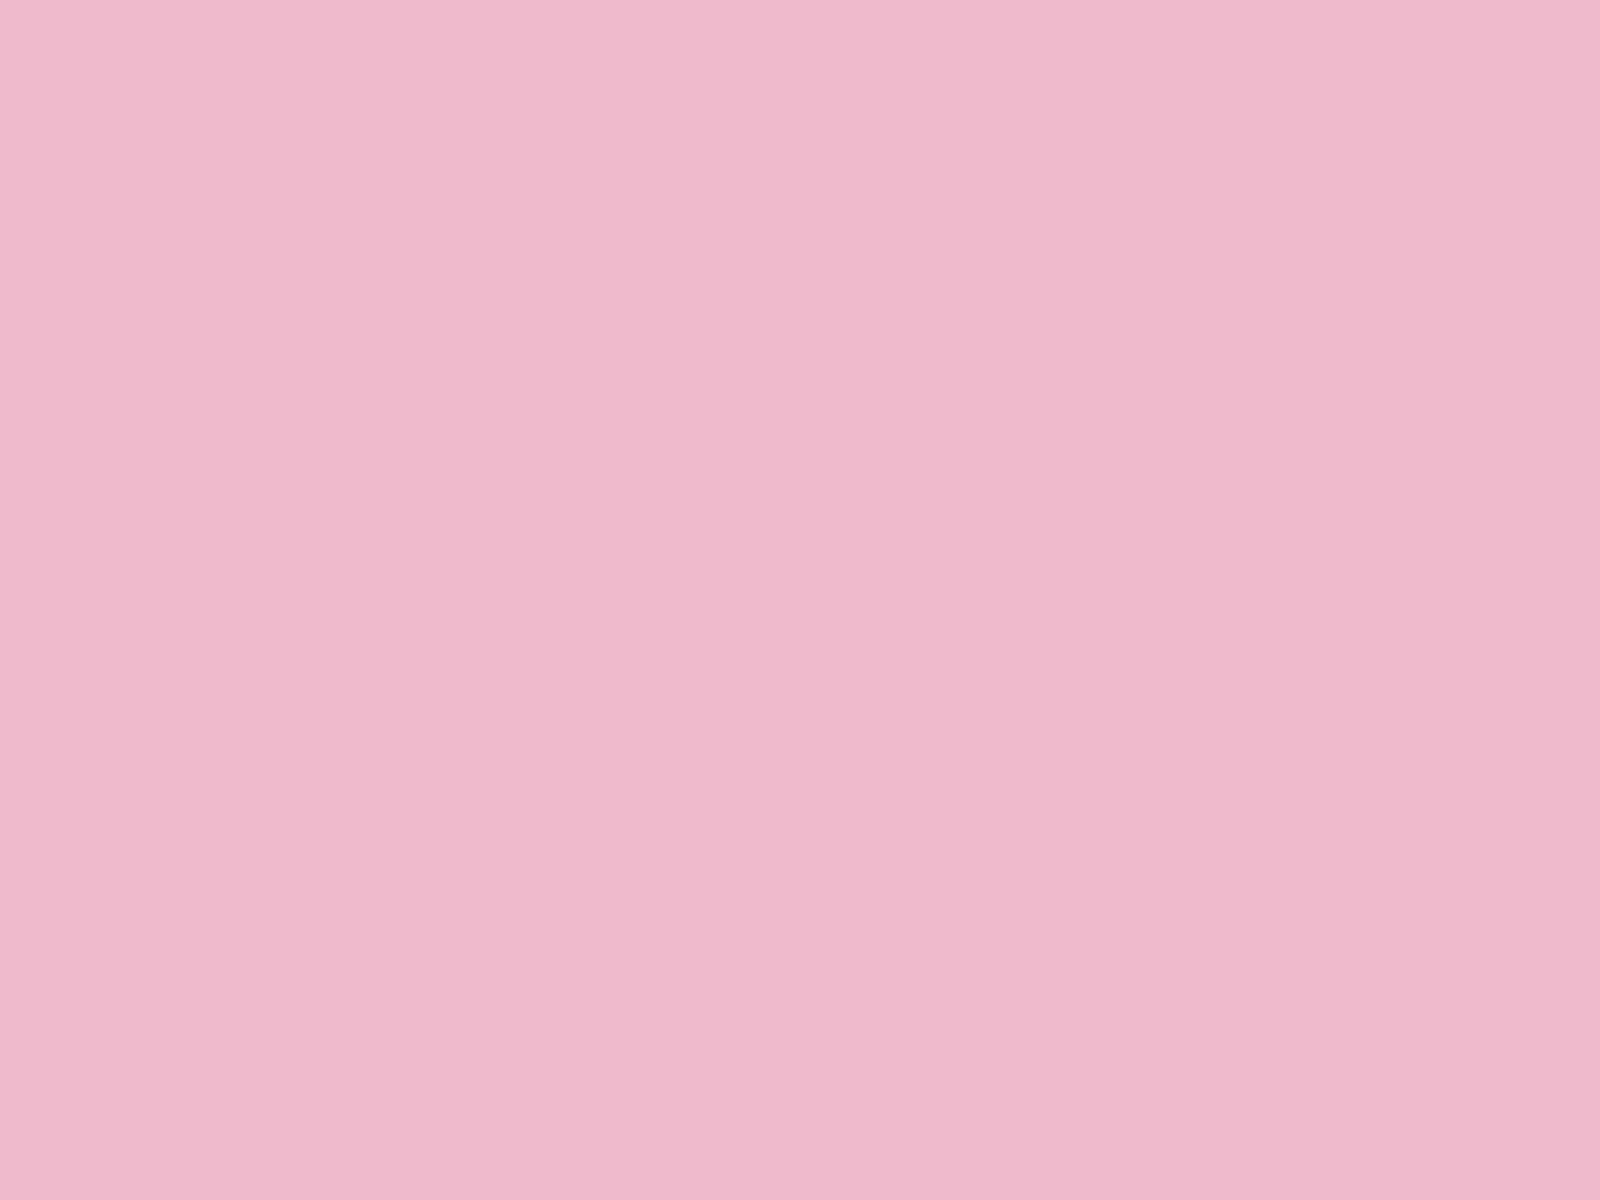 1600x1200 Cameo Pink Solid Color Background